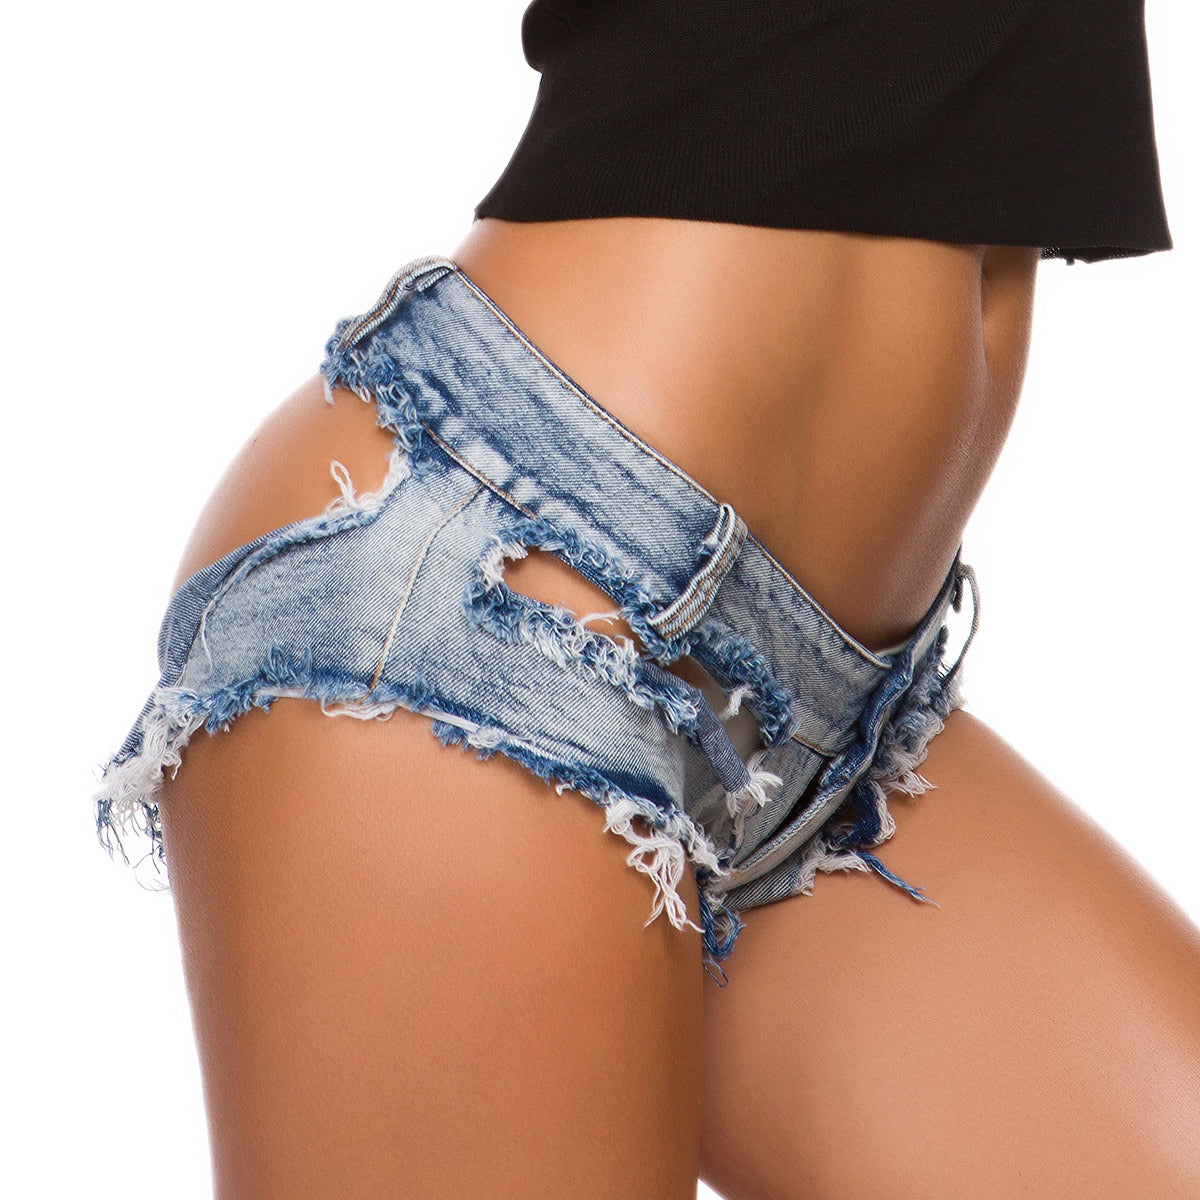 New autumn sexy women's jeans denim shorts hot pants low waist sexy ripped nightclub women's clothing